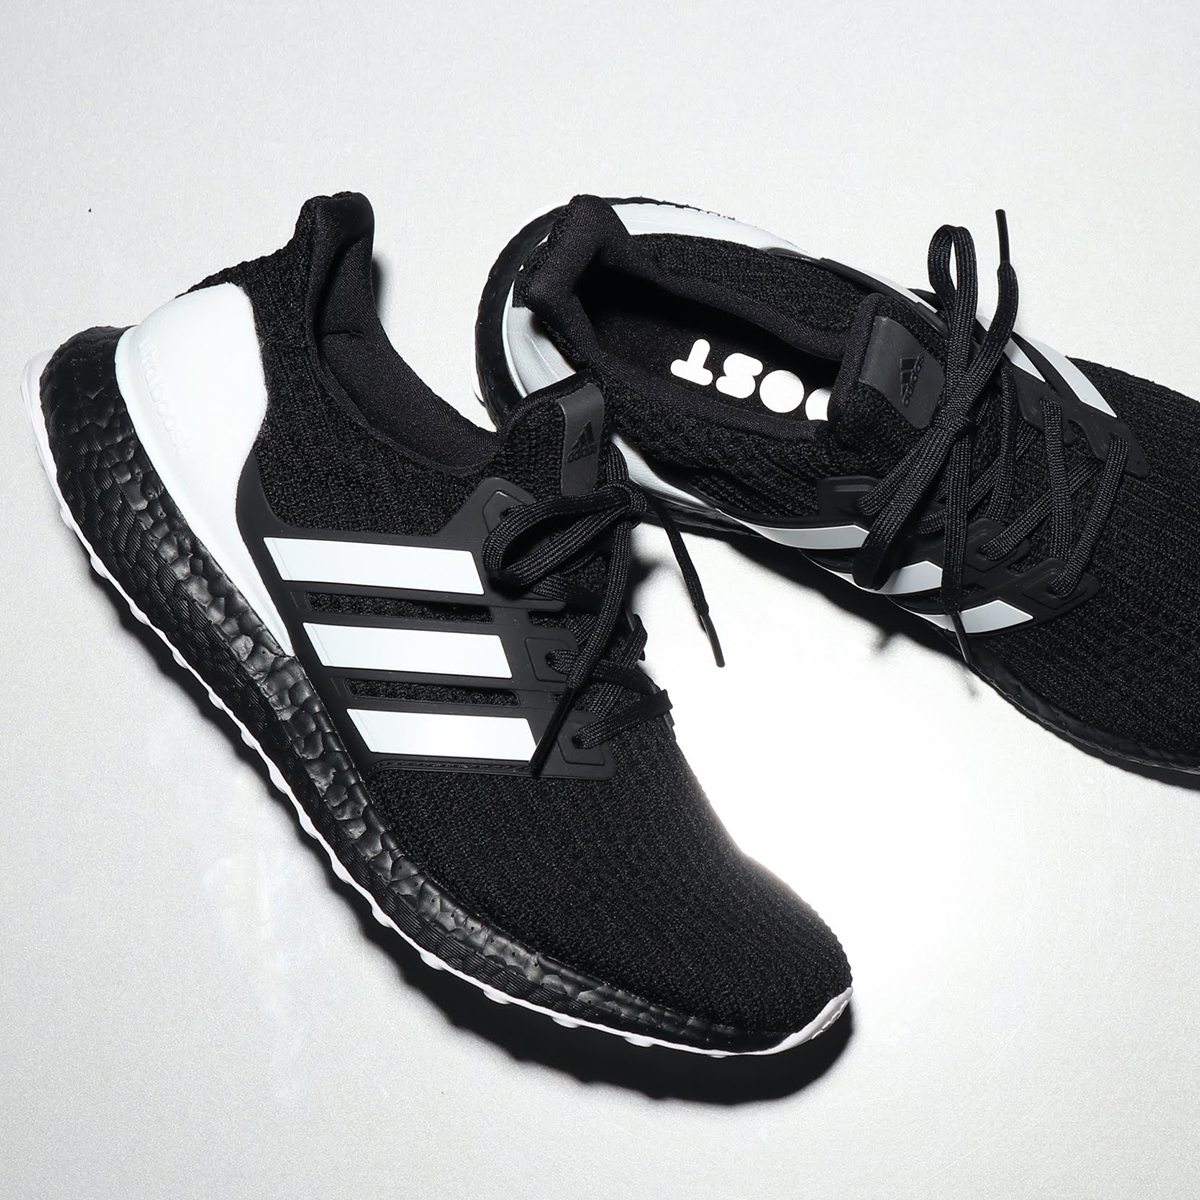 sneakers for cheap 1df0a 92974 adidas UltraBOOST (Adidas ultra boost) CORE BLACK/RUNNING WHITE/CARBON  18FW-I